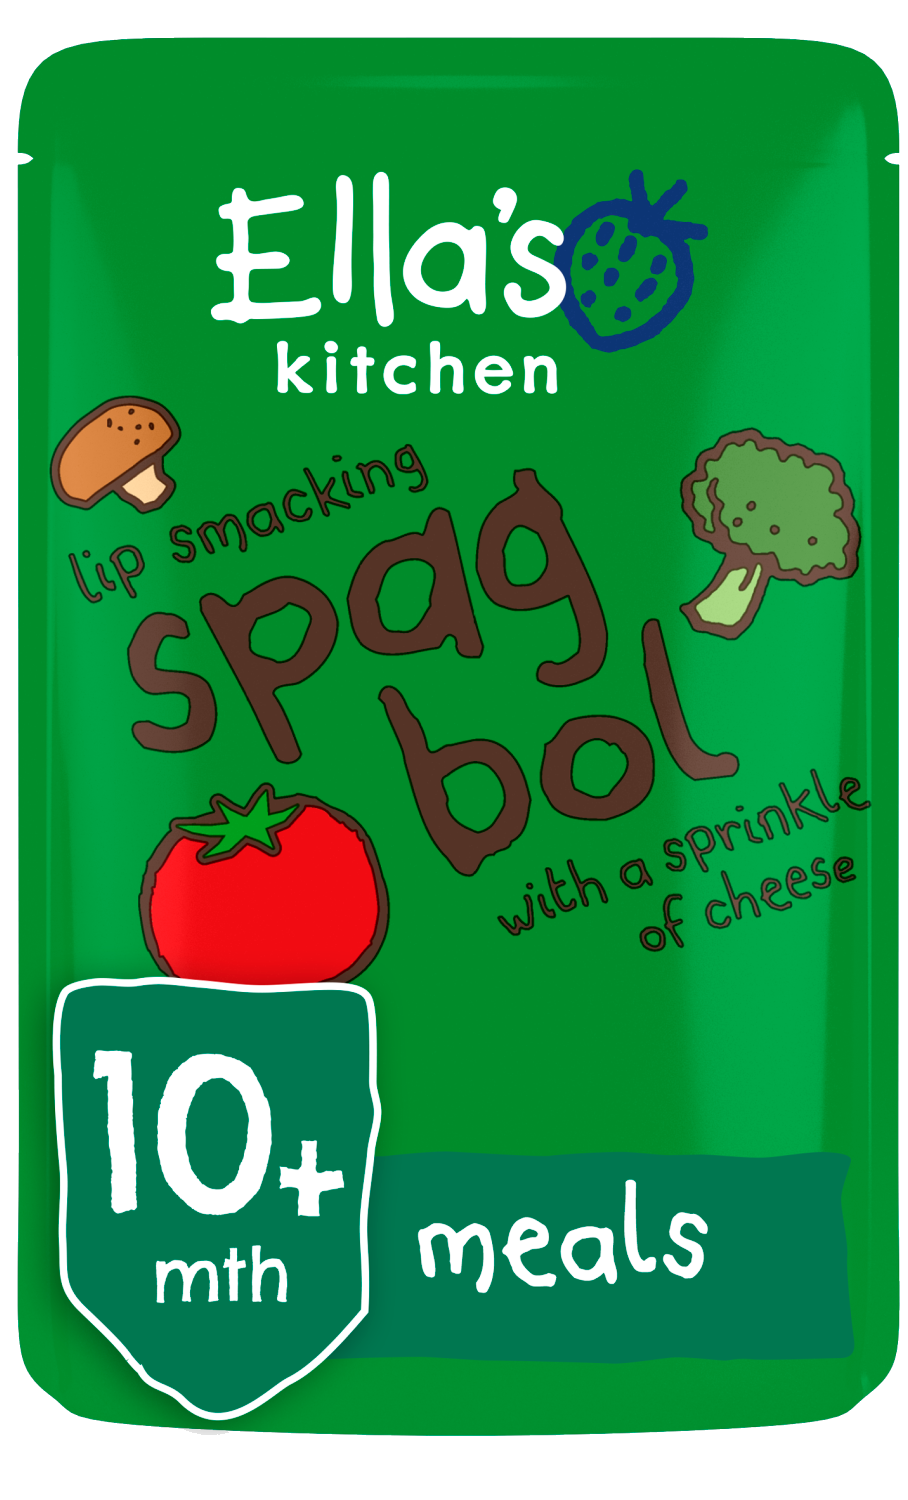 Ellas kitchen spag bol cheese pouch 10 months front of pack O